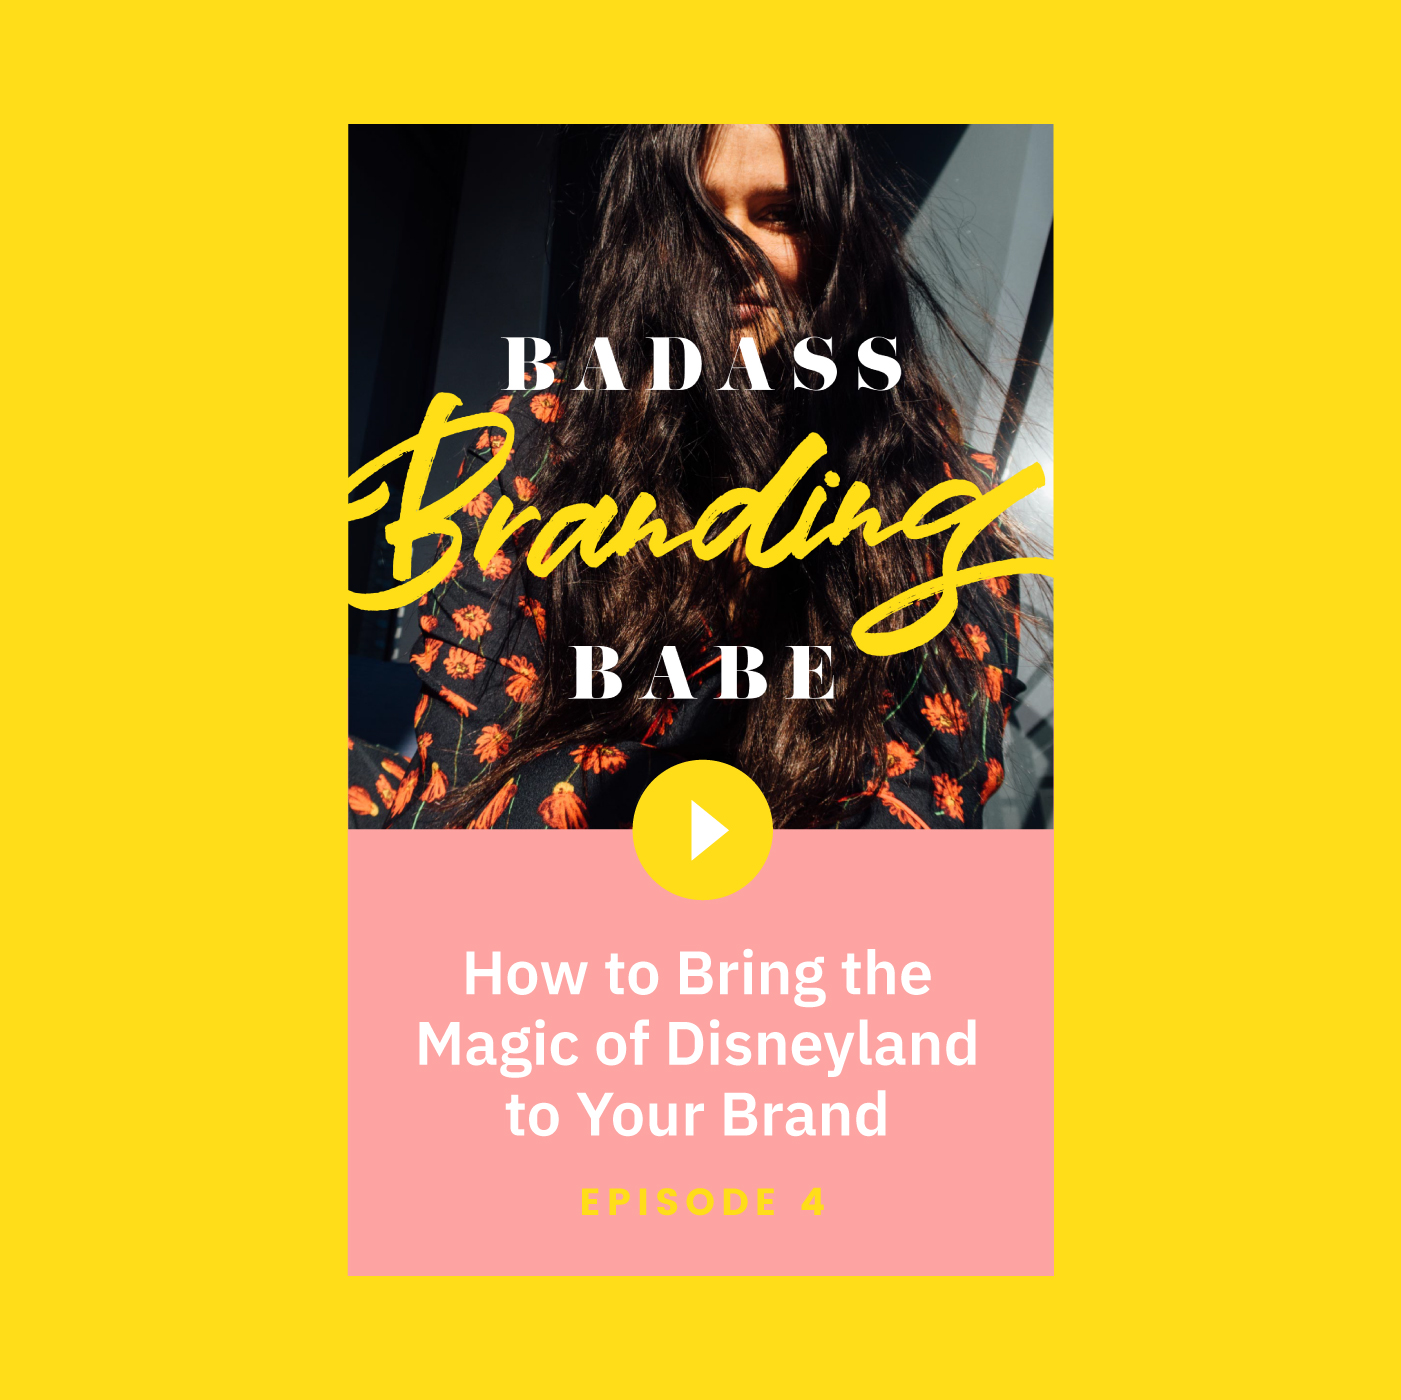 4. How To Bring The Magic Of Disneyland To Your Brand